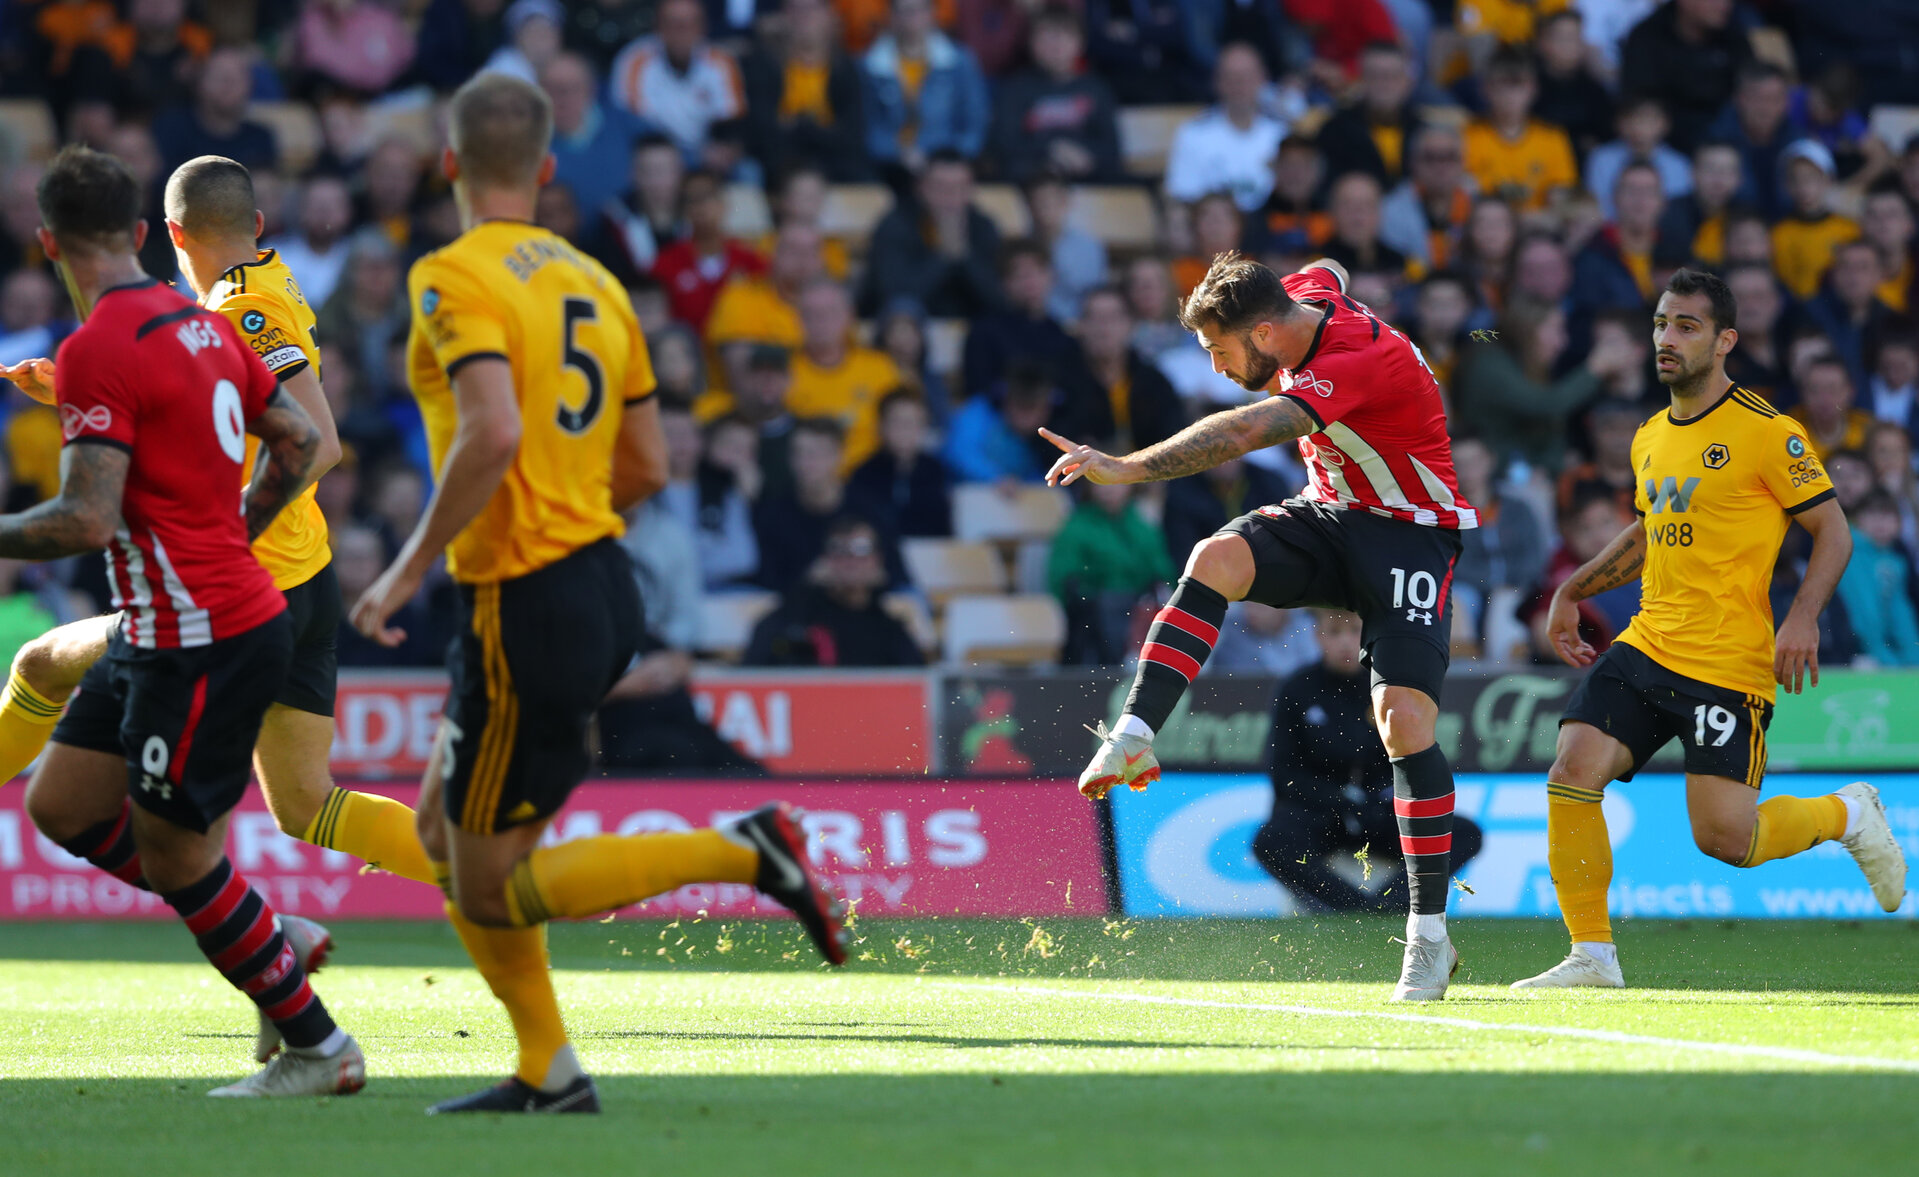 WOLVERHAMPTON, ENGLAND - SEPTEMBER 29: Charlie Austin of Southampton shoots at goal during the Premier League match between Wolverhampton Wanderers and Southampton FC at Molineux on September 29, 2018 in Wolverhampton, United Kingdom. (Photo by Matt Watson/Southampton FC via Getty Images)